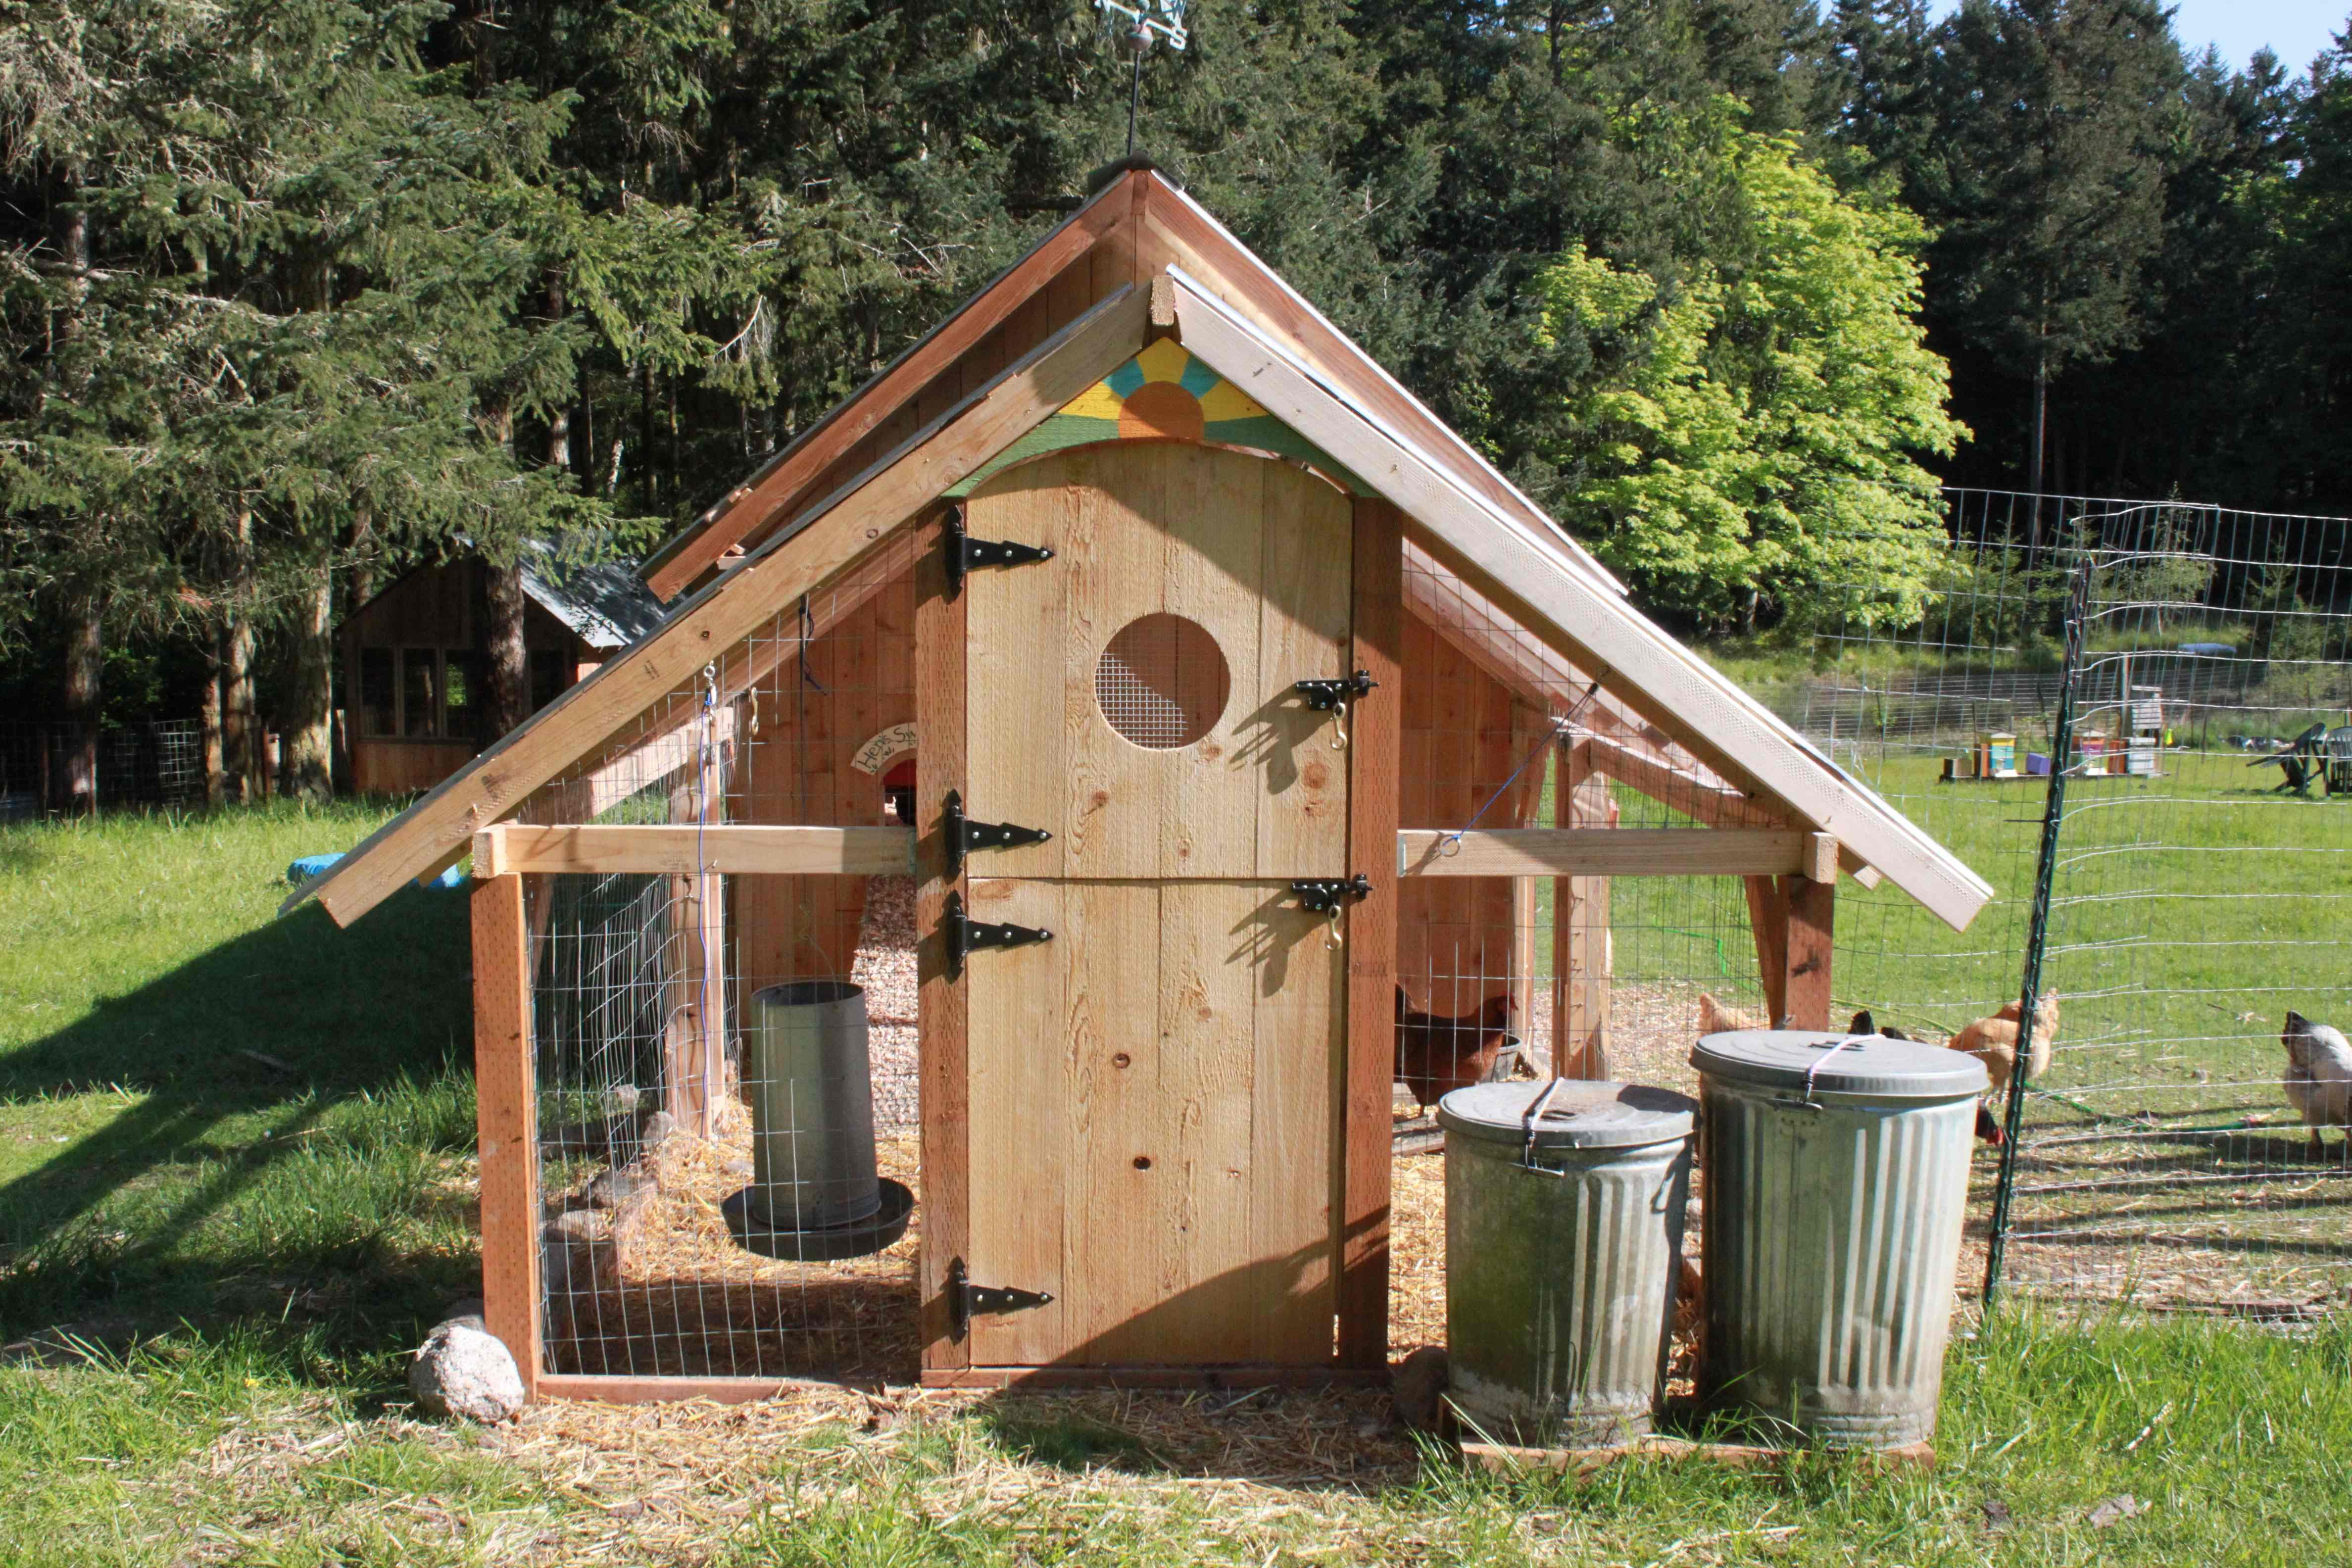 Diy Chick Coop Learn Chicken Coop Ideas Pictures